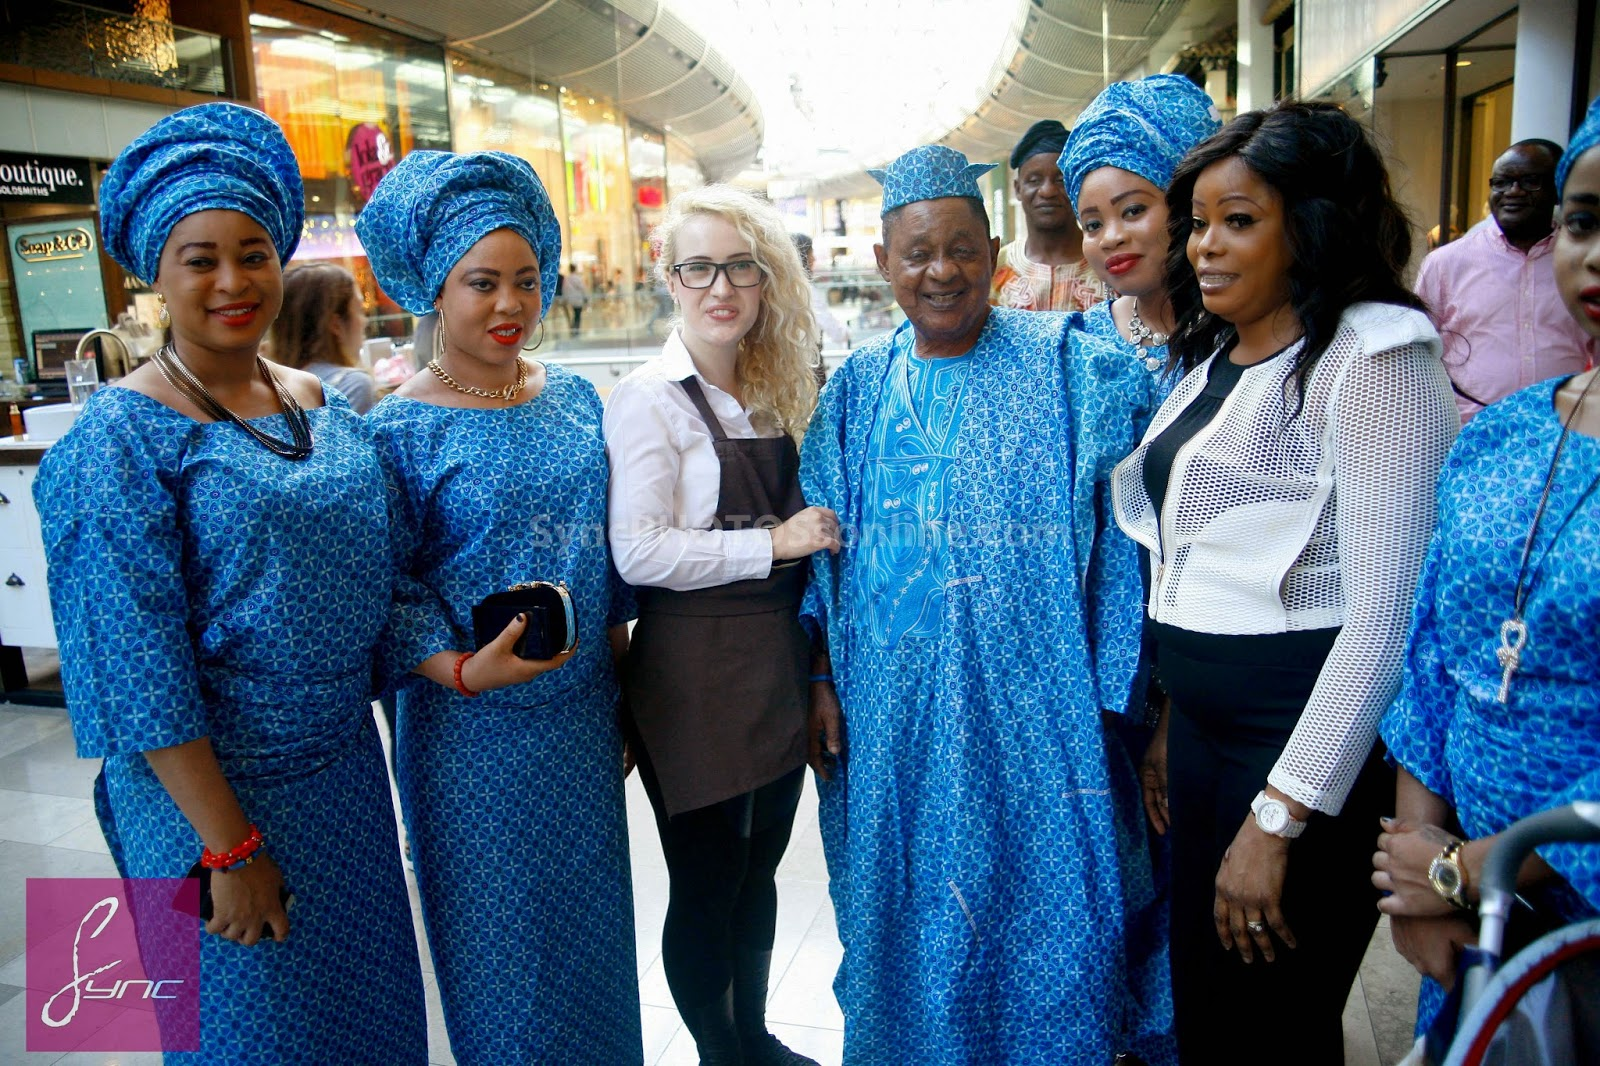 http://nuj-europe-chapter.blogspot.co.uk/2014/09/alaafin-of-oyo-londoners-feel-splendour.html